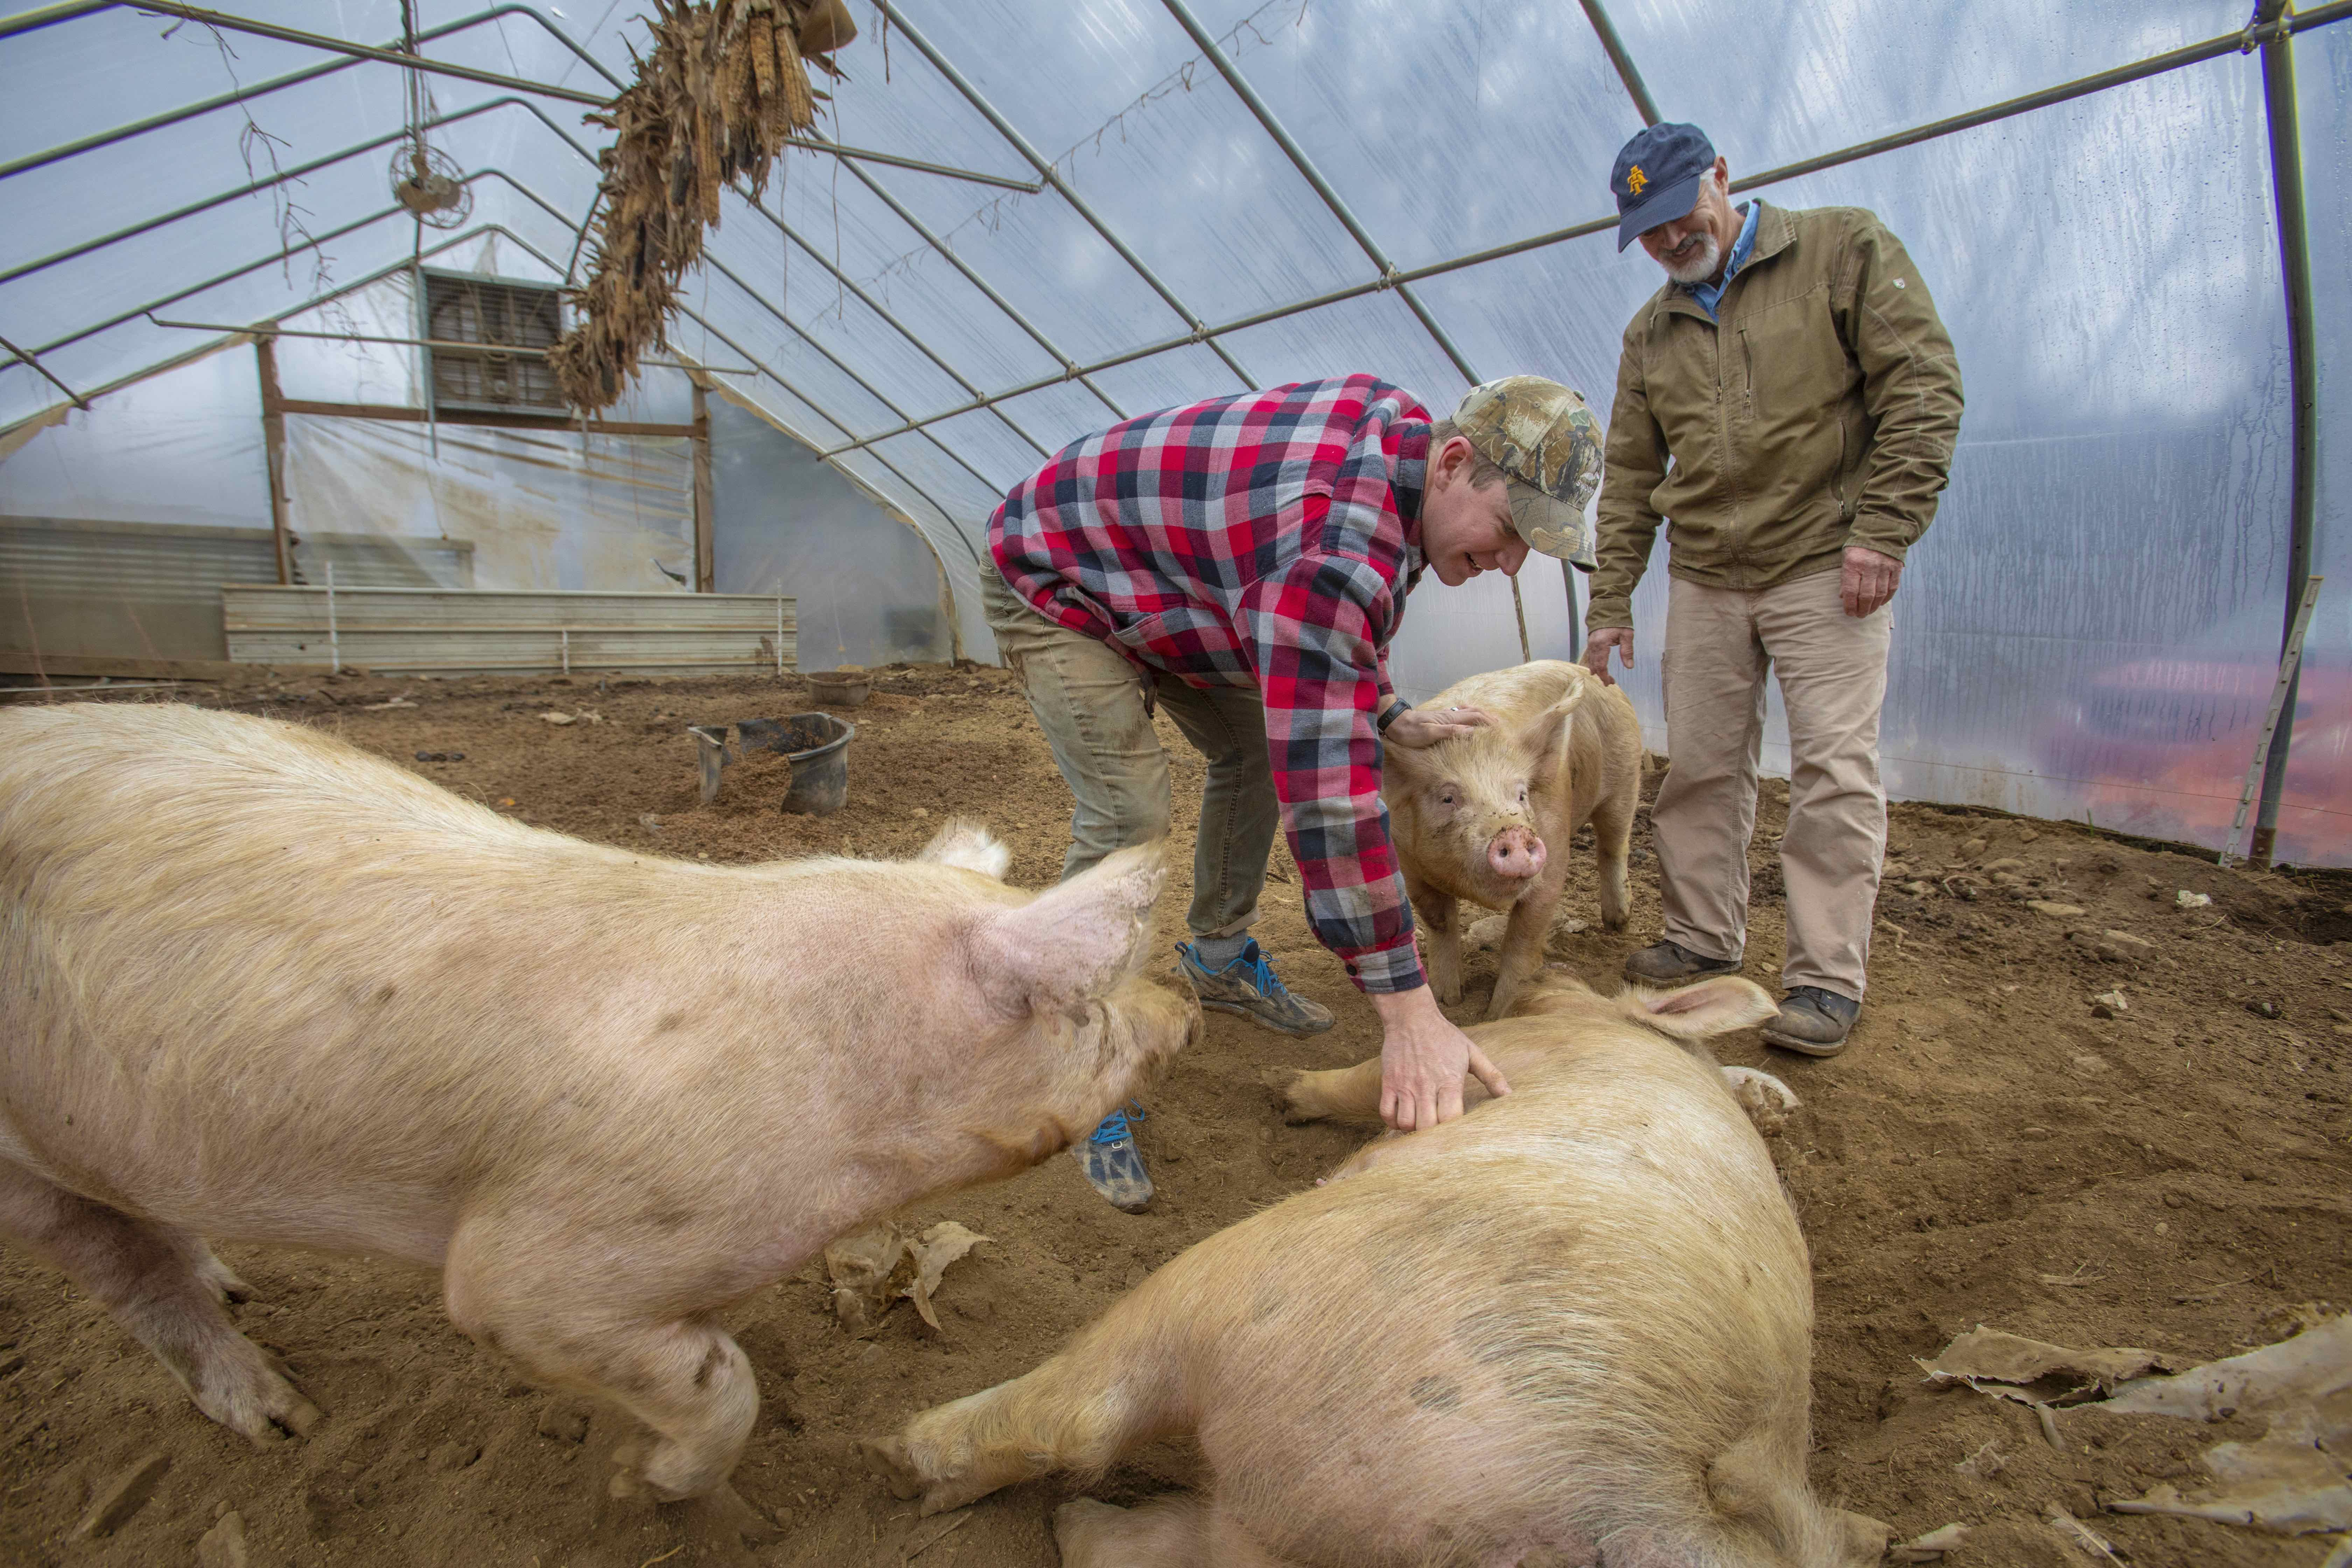 Amos Nidiffer with N.C. A&T State University Cooperative Extension Agent Bill Hoffman tend to pigs